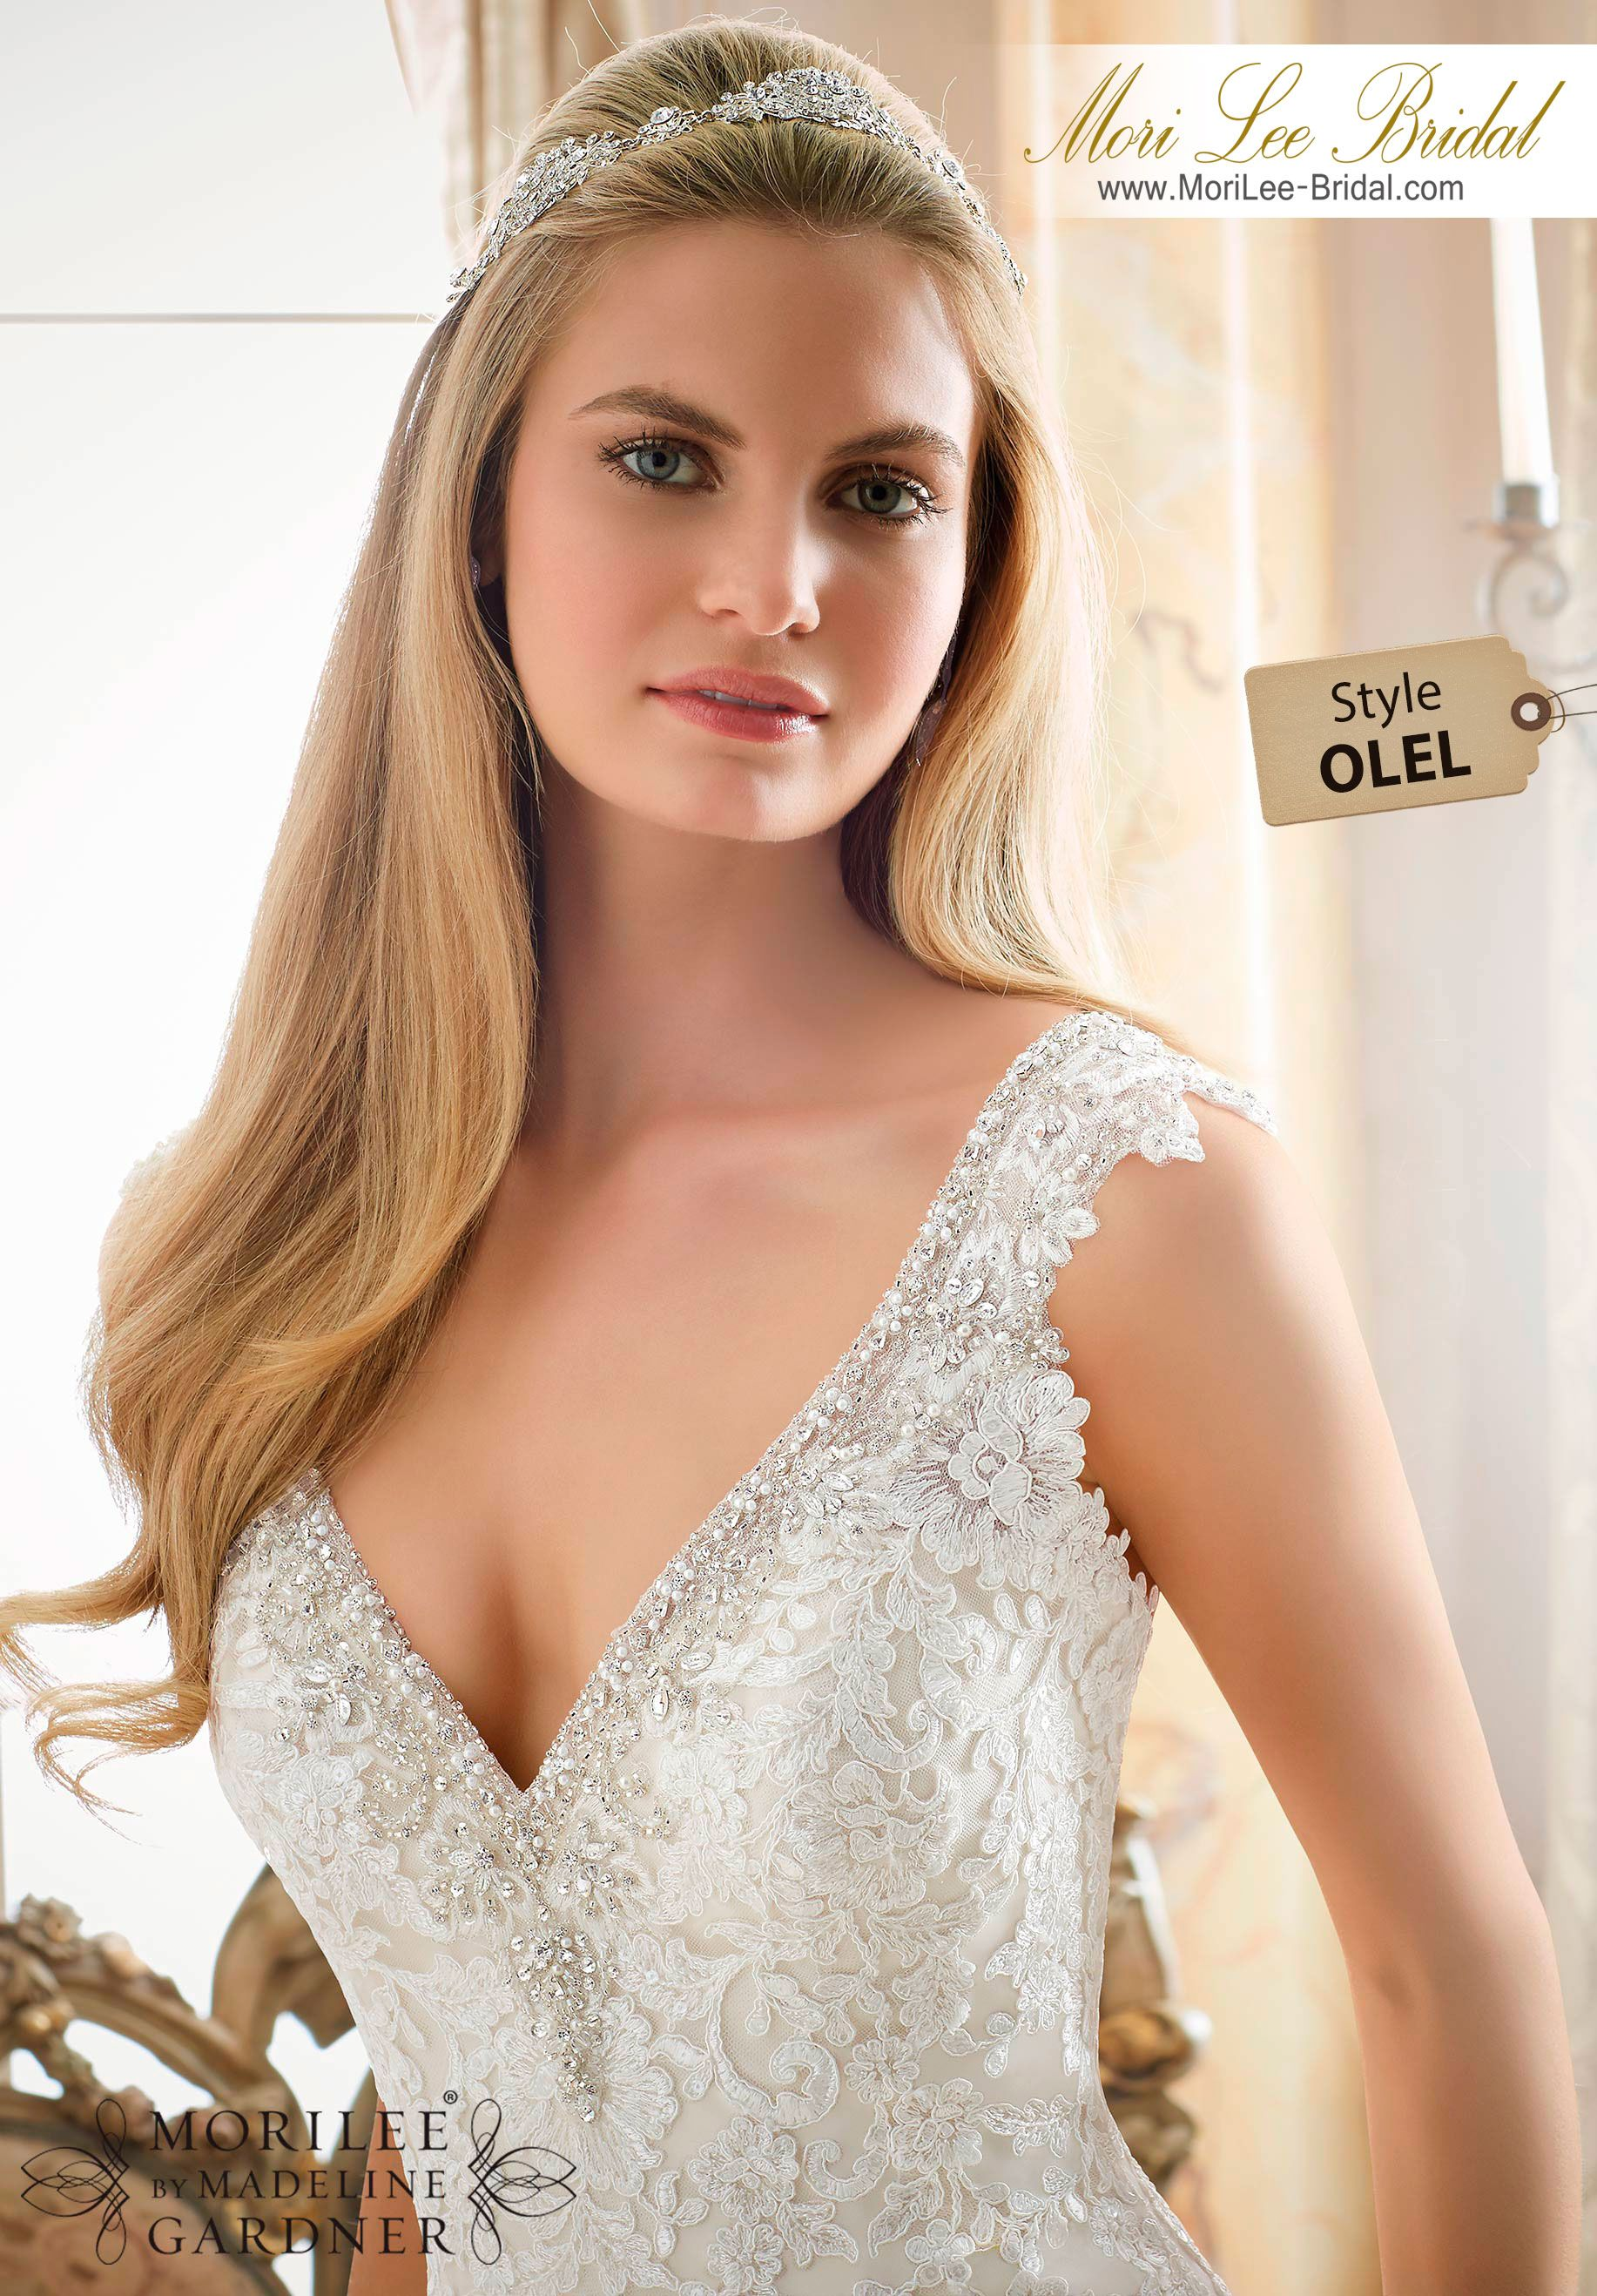 Dress Style OLEL  CONTOURED STRAPS WITH DIAMANTE BEADING ON NET WITH ALENCON LACE APPLIQUES  Colors Available: White/Silver, Ivory/Silver, Light Gold/Silver